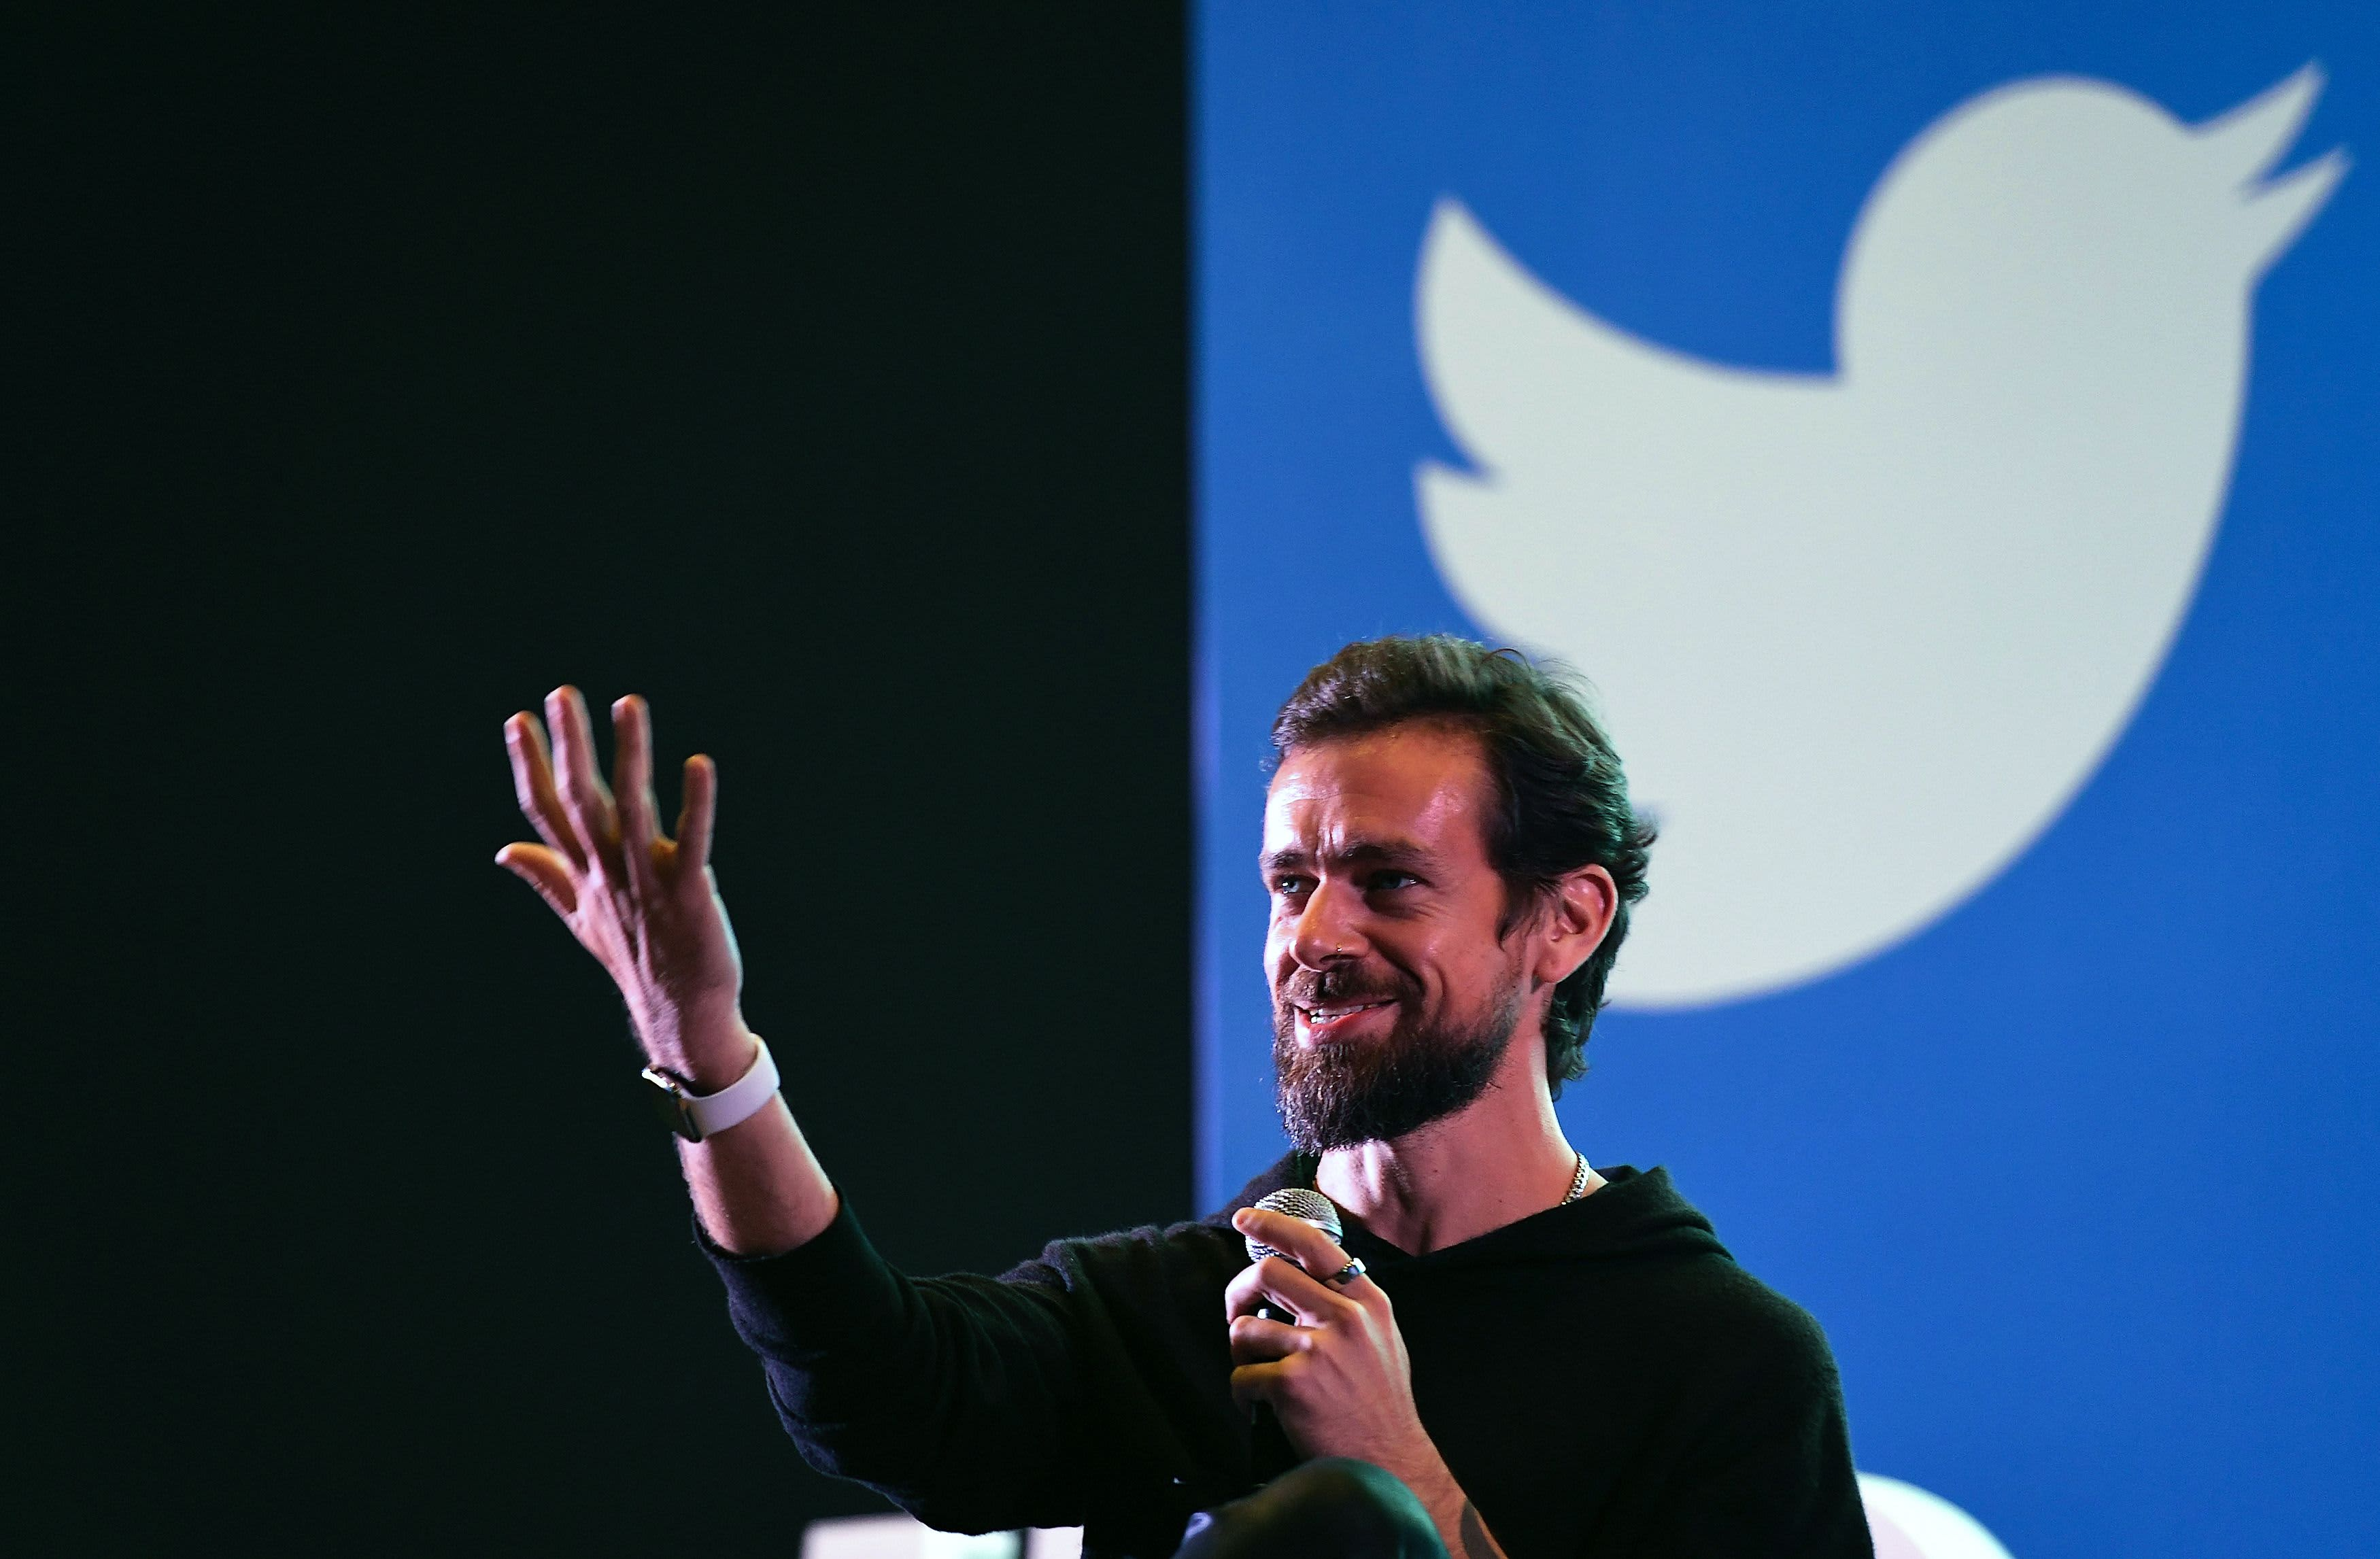 Jack Dorsey is offering to sell the first tweet as an NFT and the highest bid is $2.5 million - CNBC